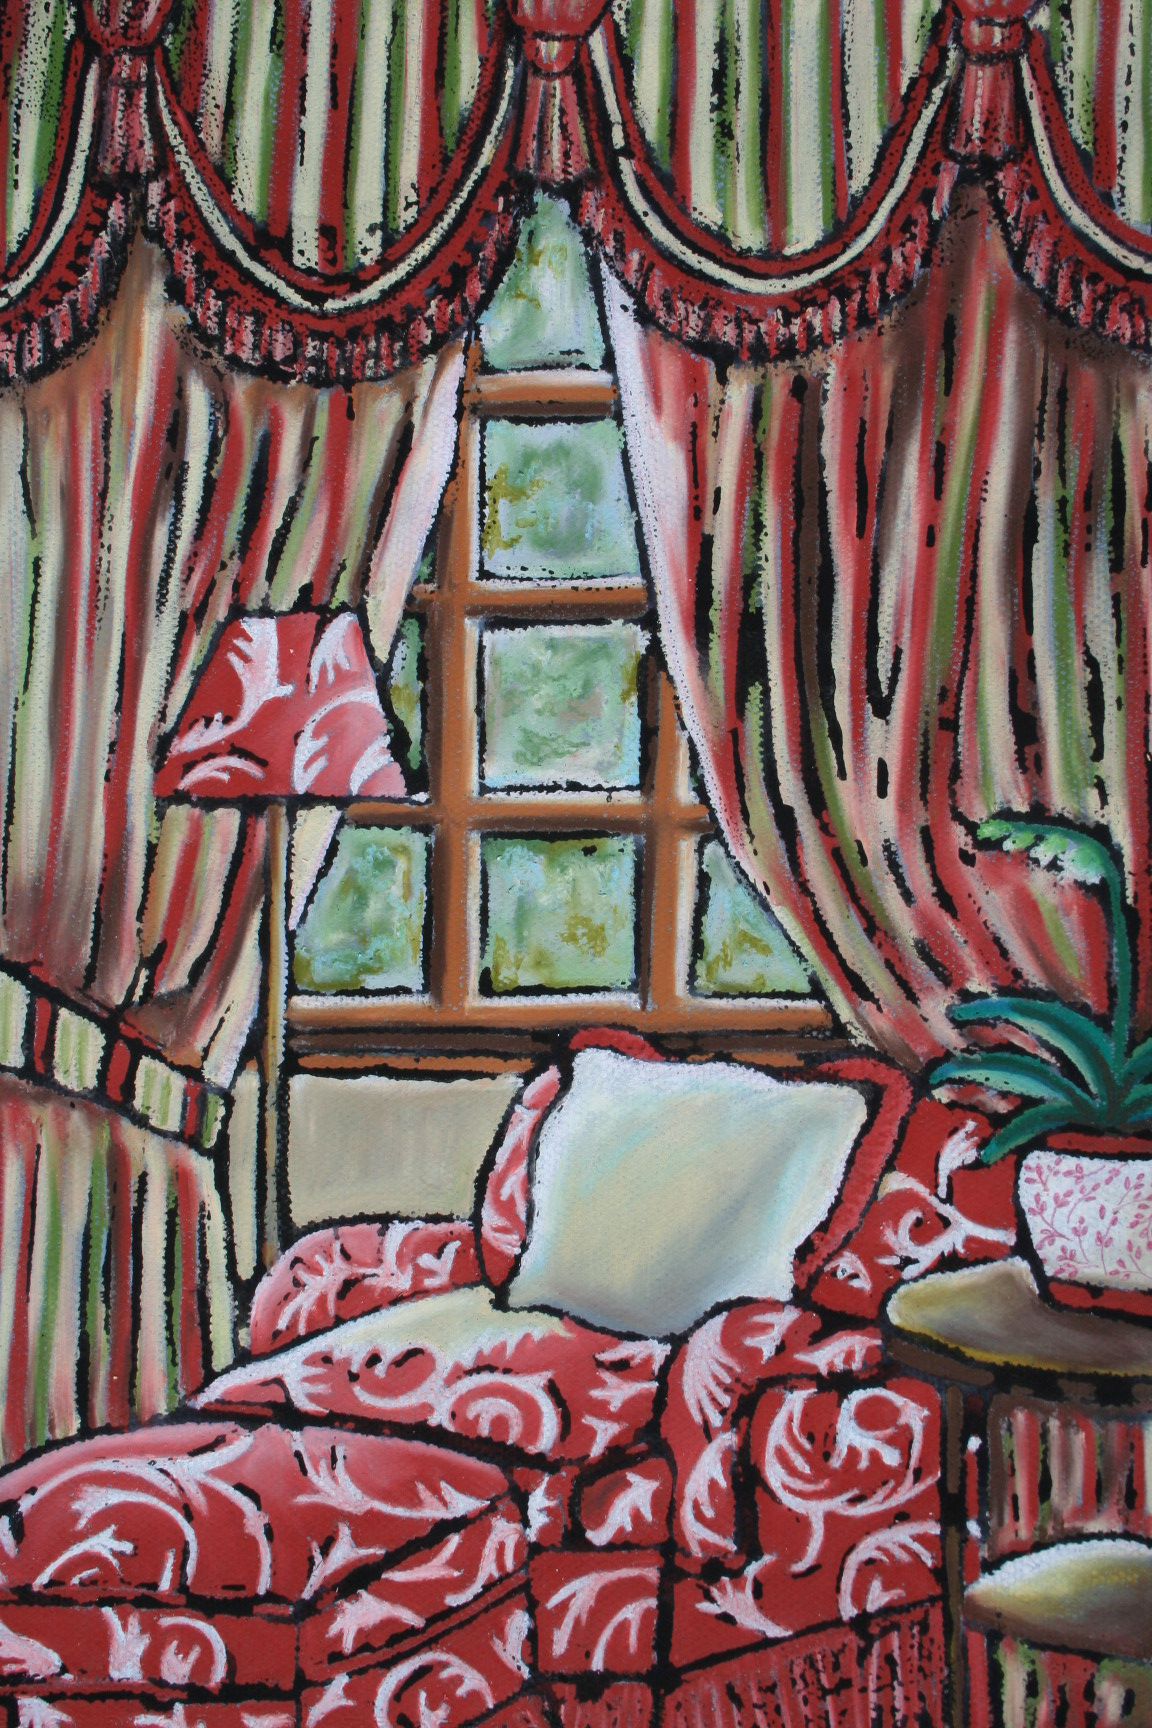 The Red Patterned Chair (6).jpg